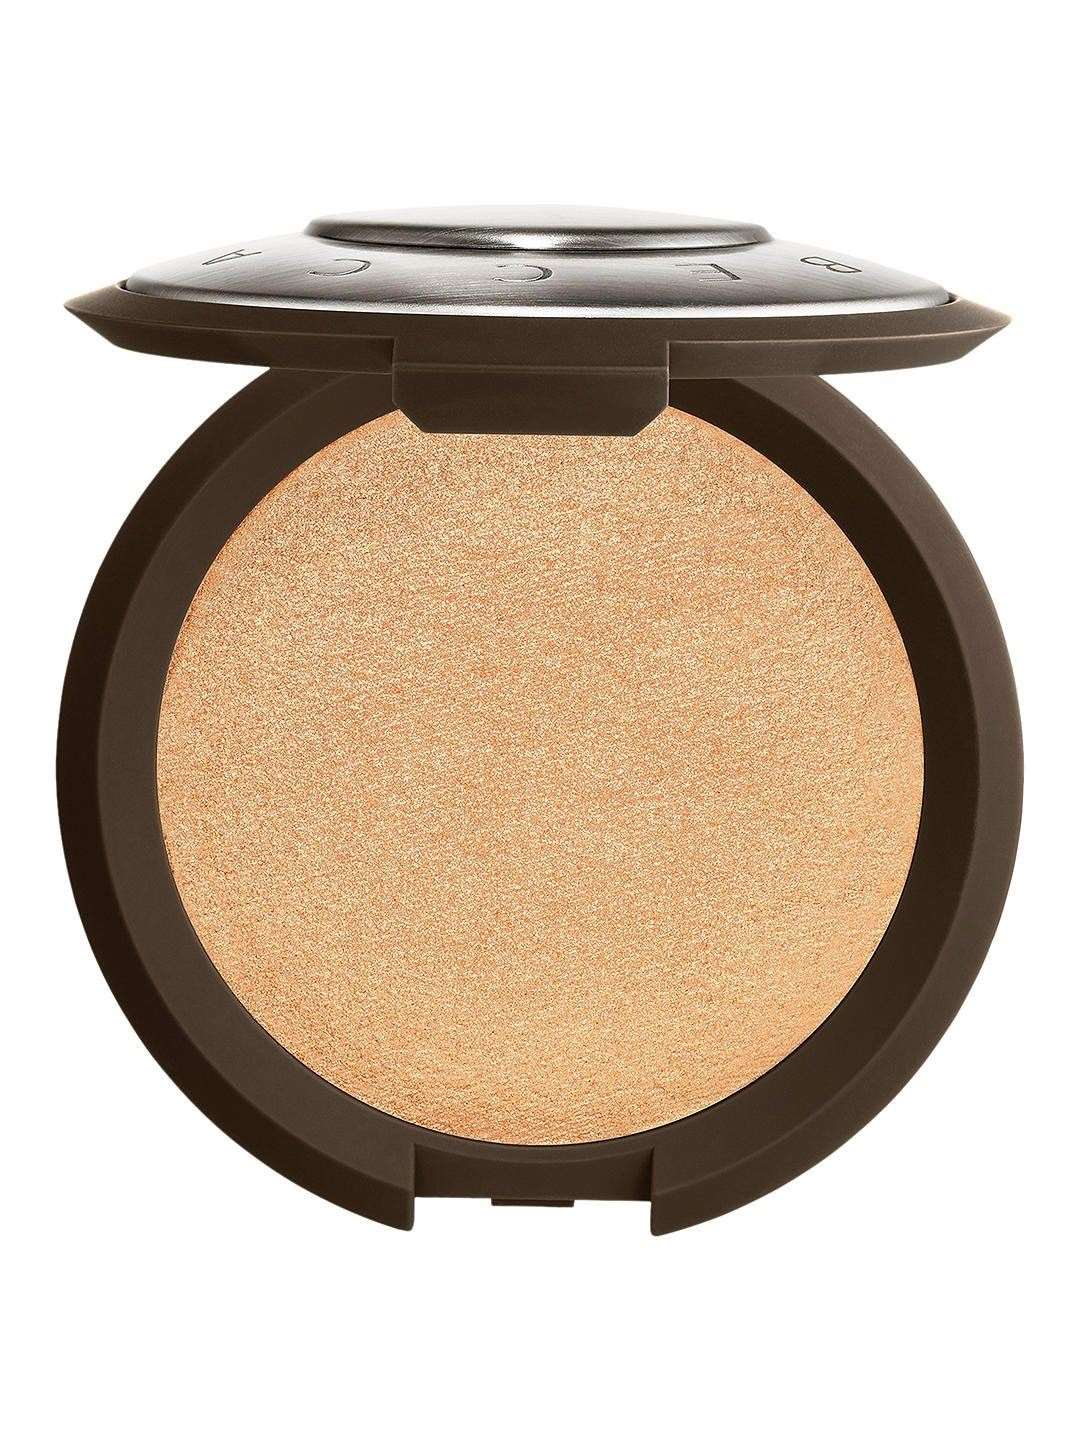 Becca Shimmering Skin Perfector Pressed Highlighter in Champagne Pop, £30, John Lewis & Partners, Grand Arcade, Cambridge (26884119)